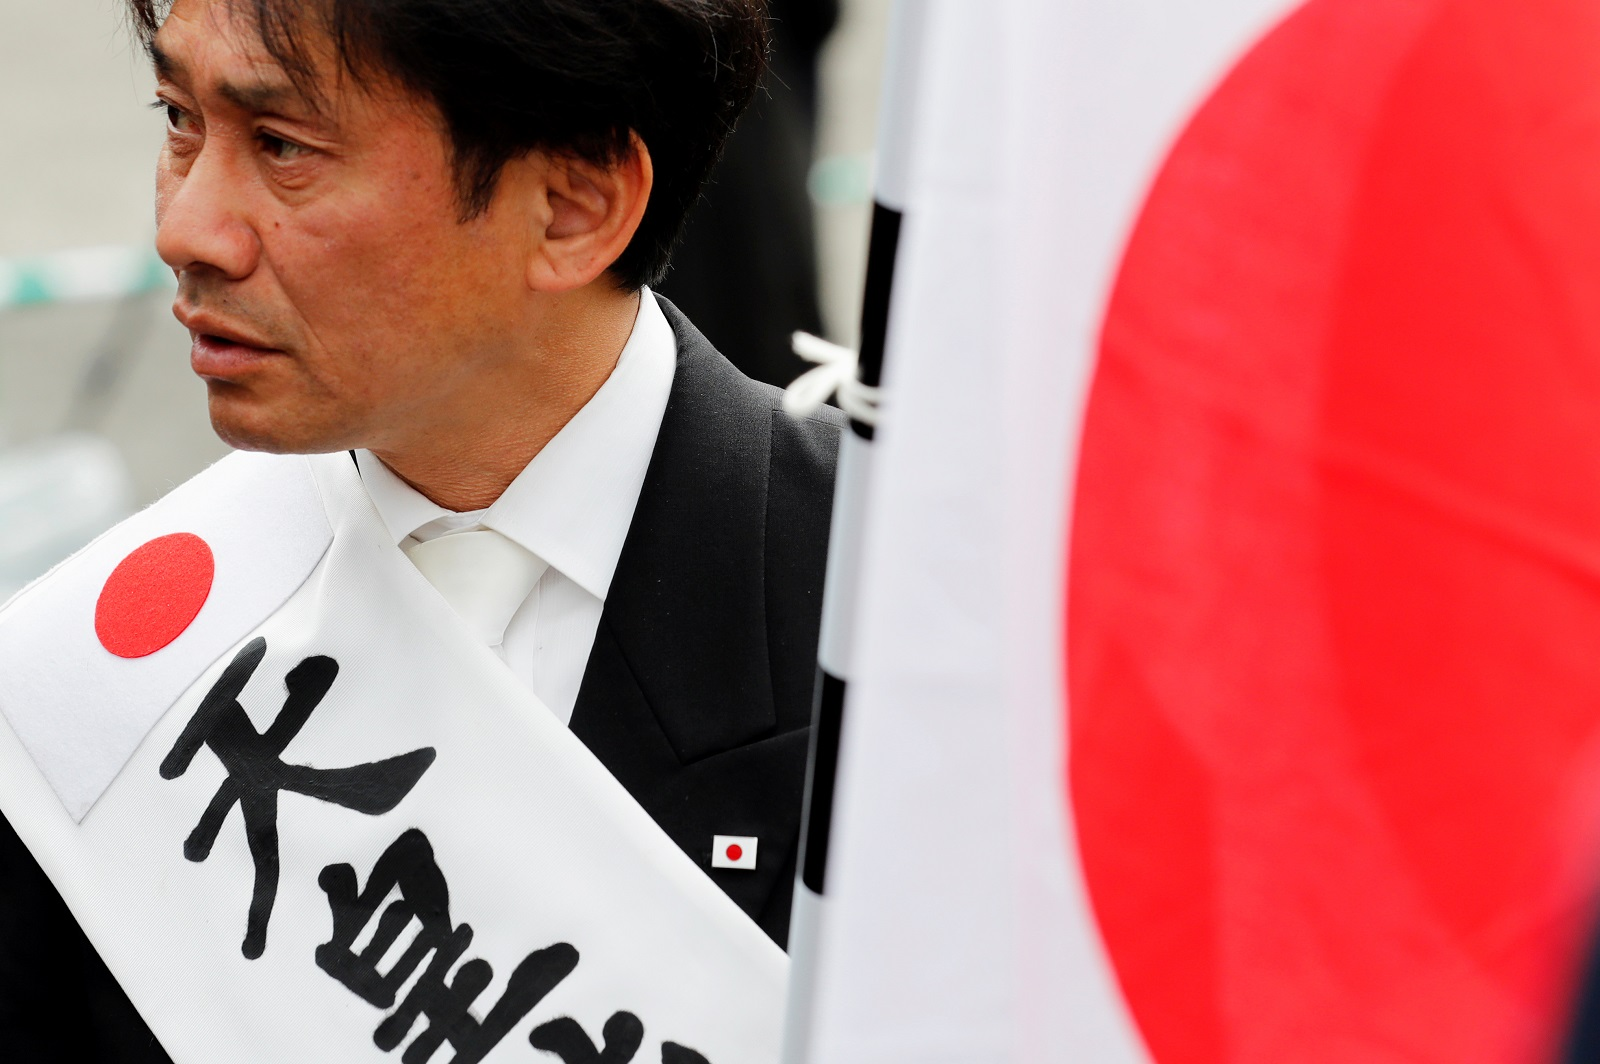 A man holds a Japanese flag while waiting for the arrival of Japan's new Emperor Naruhito to the Imperial Palace in Tokyo, Japan May 1, 2019. REUTERS/Kim Kyung-Hoon